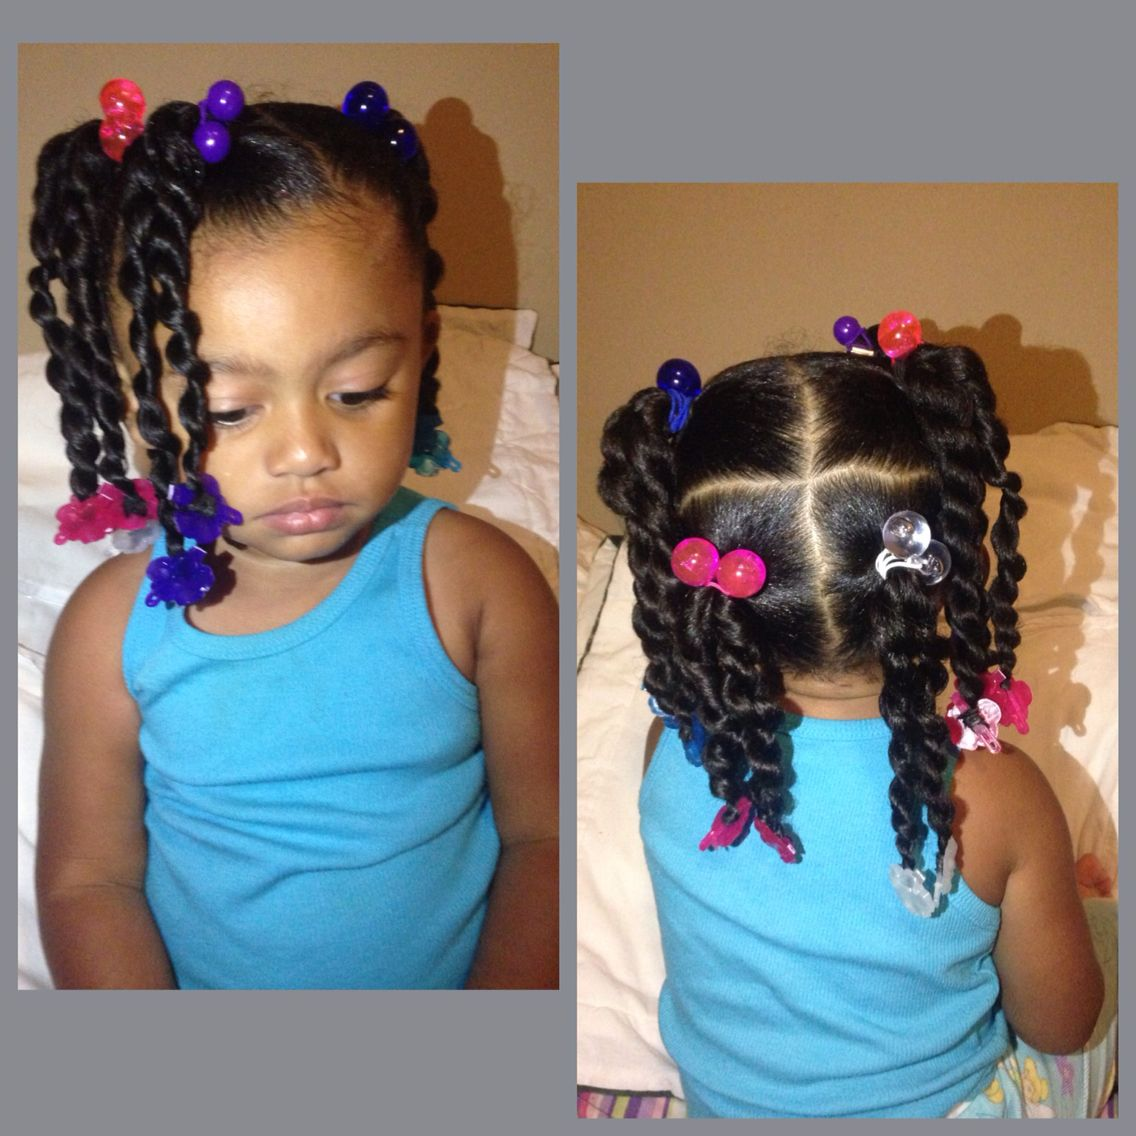 Cute hairstyles for kids hairstyleforblackwomen.net 18